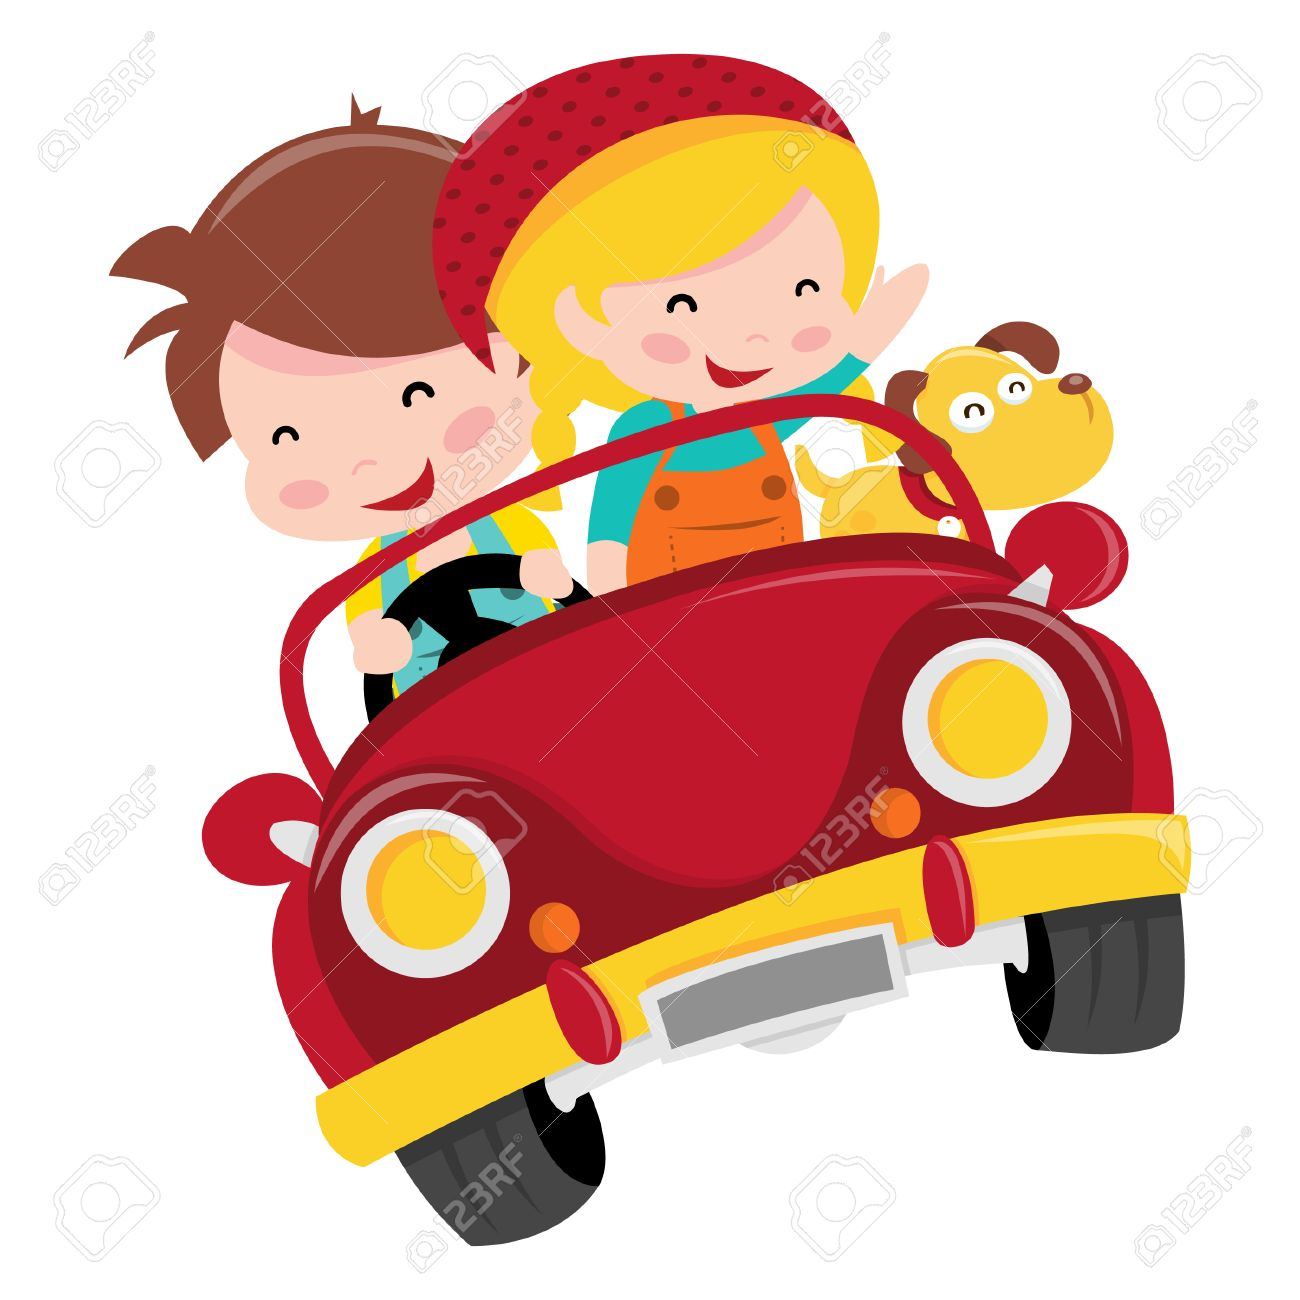 A Cartoon Illustration Of Two Happy Kids Boy And Girl Riding